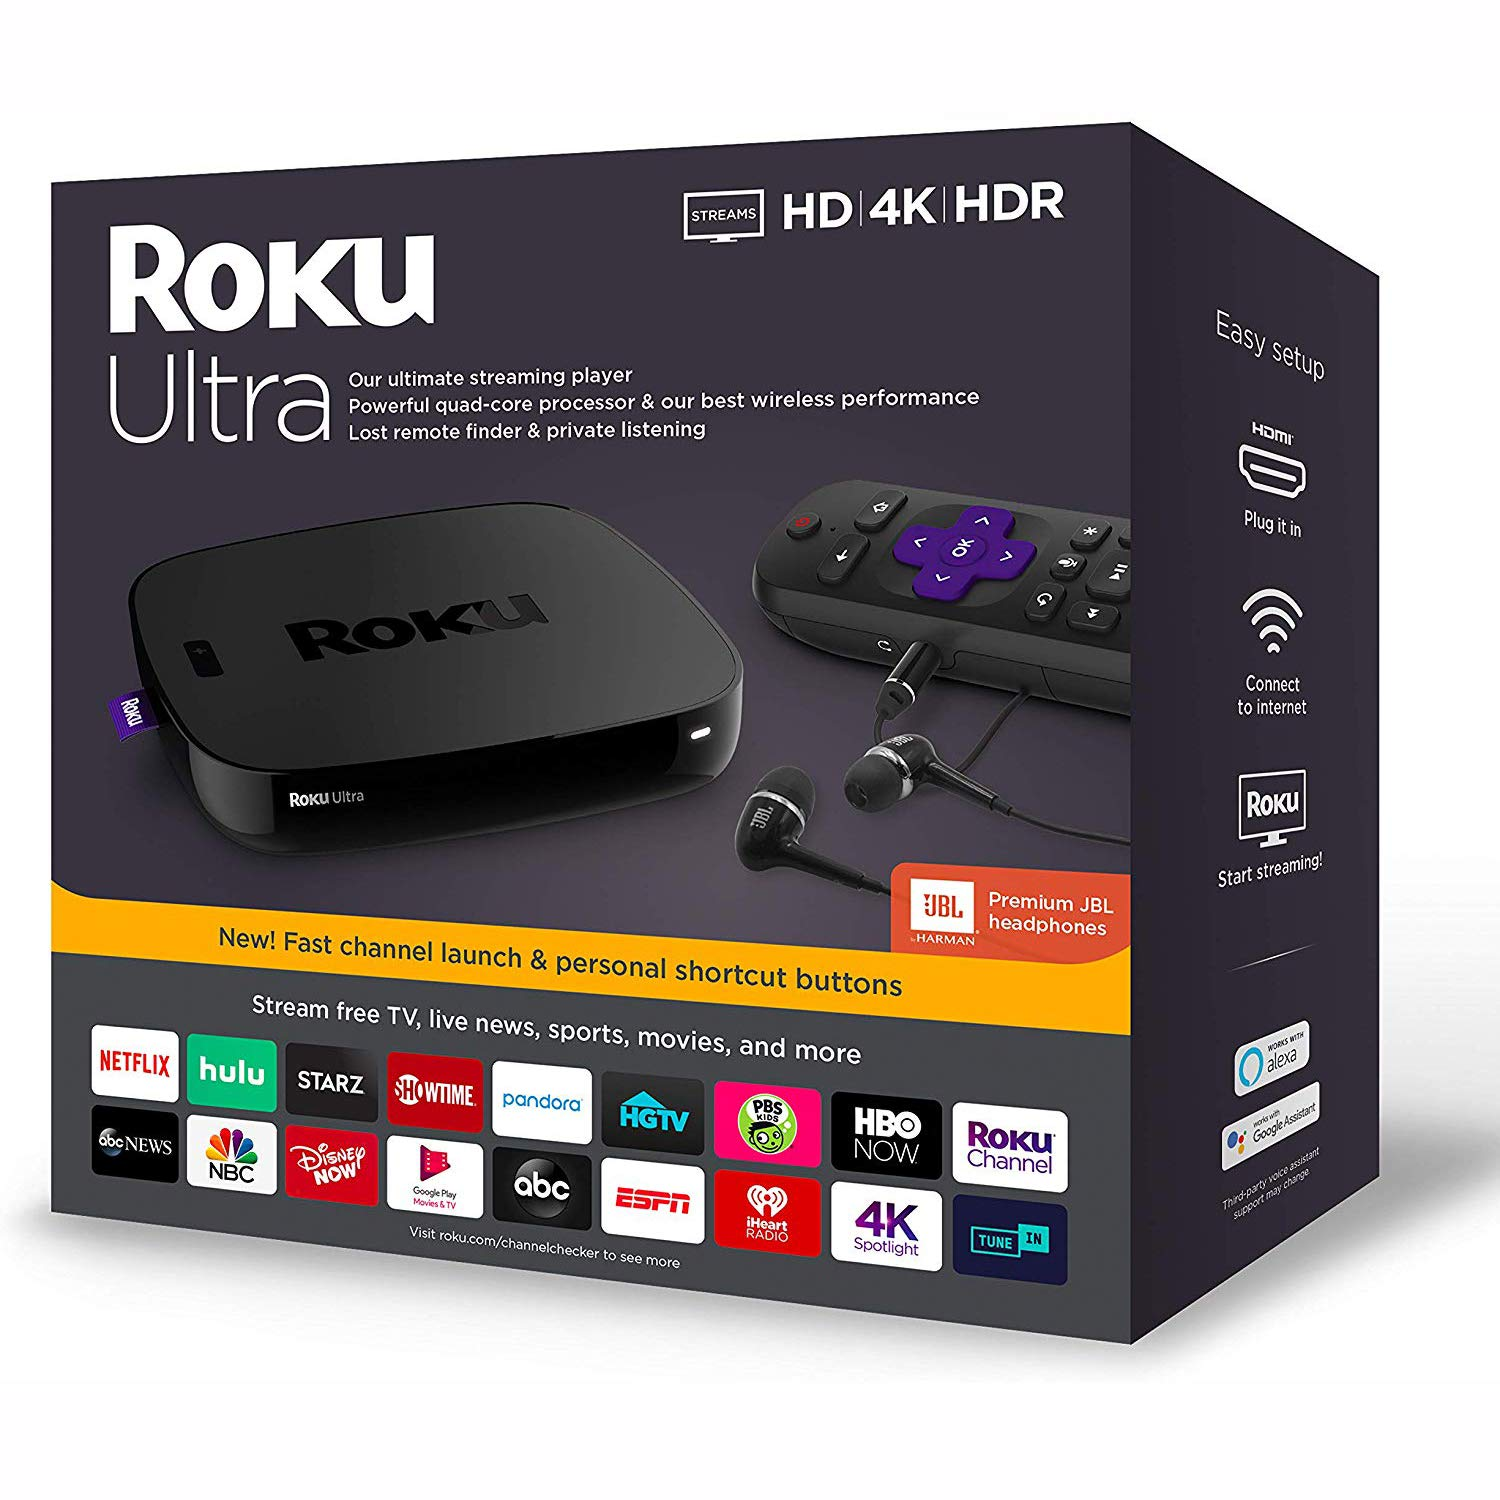 newest-roku-ultra-streaming-media-player-4khdhdr-premium-jbl-headphones-enhanced-voice-remote-with-tv-controls-and-personal-shortcuts-powerful-quad-core-processor-hdmi-ethernet-and